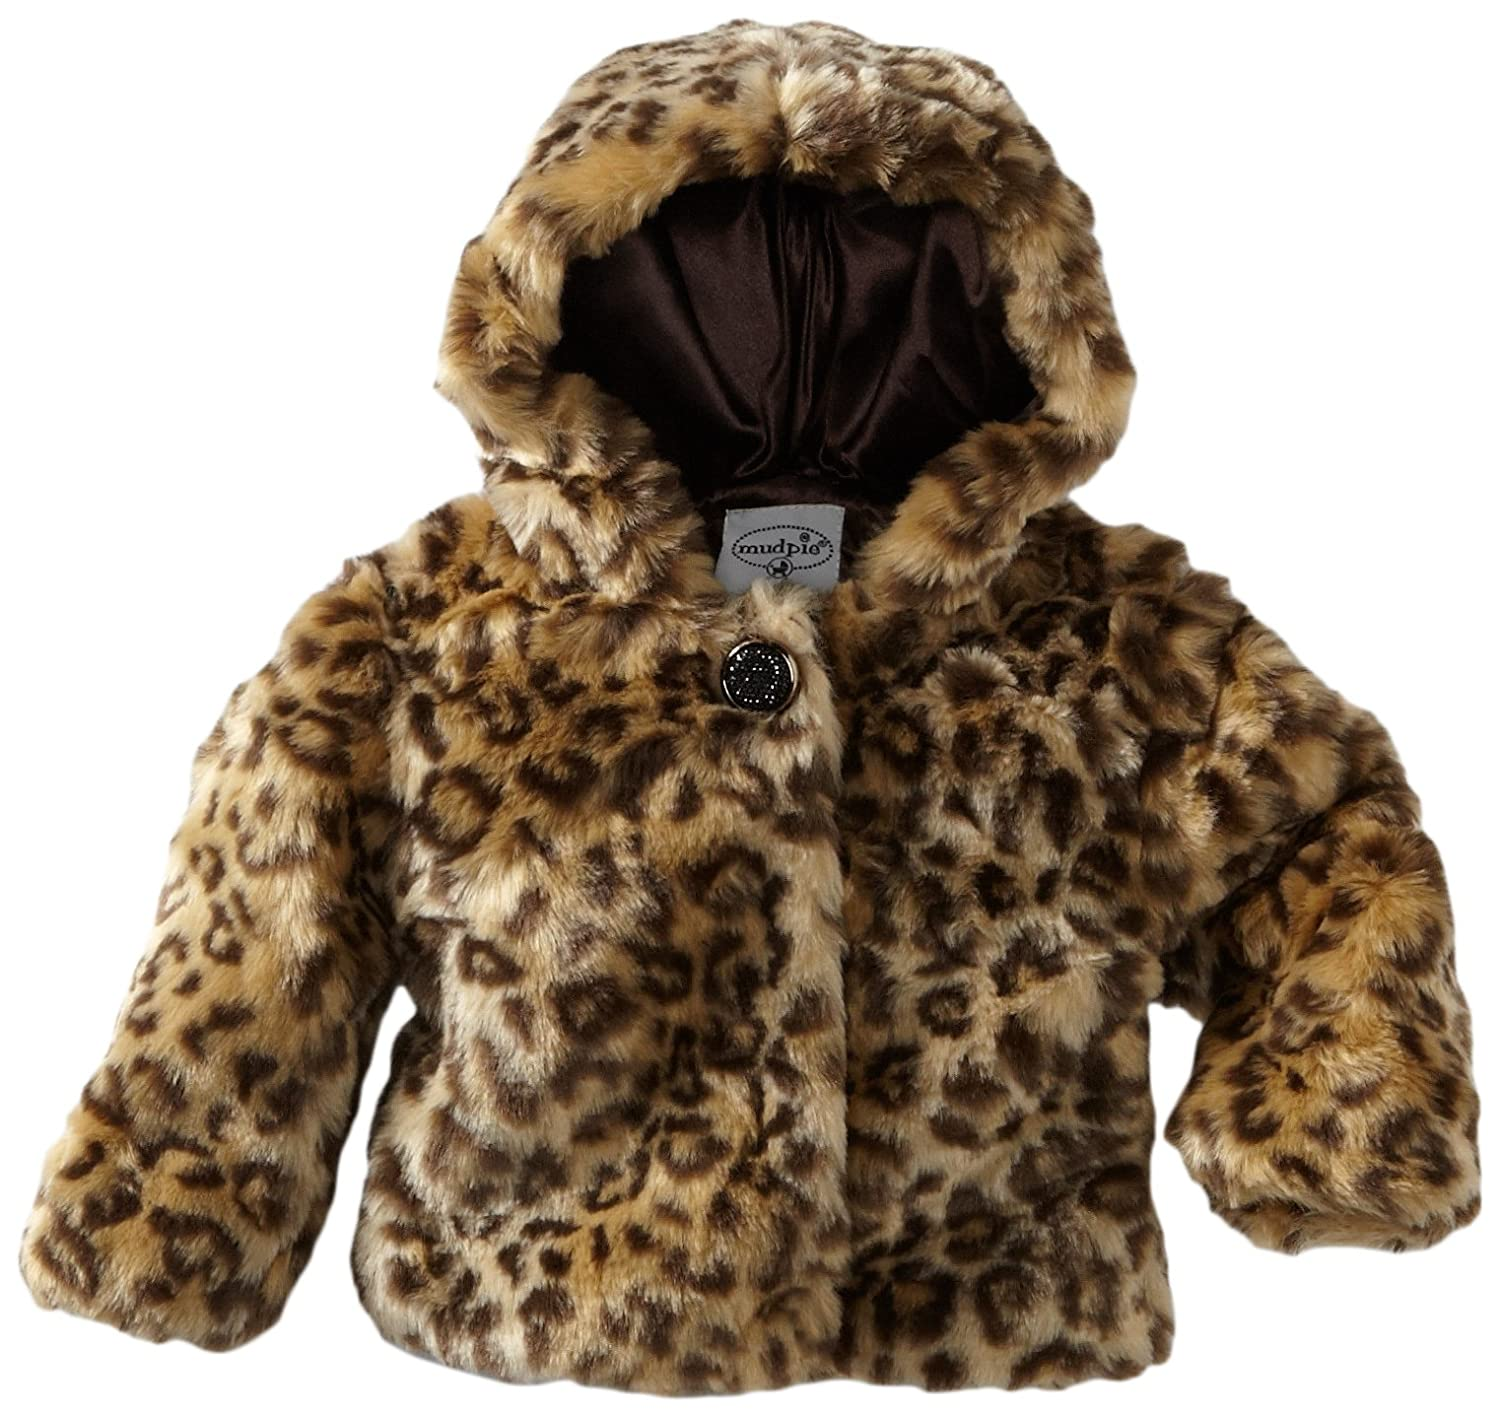 Amazon.com: Mud Pie Baby Girls' Zebra Faux Fur Coat: Infant And